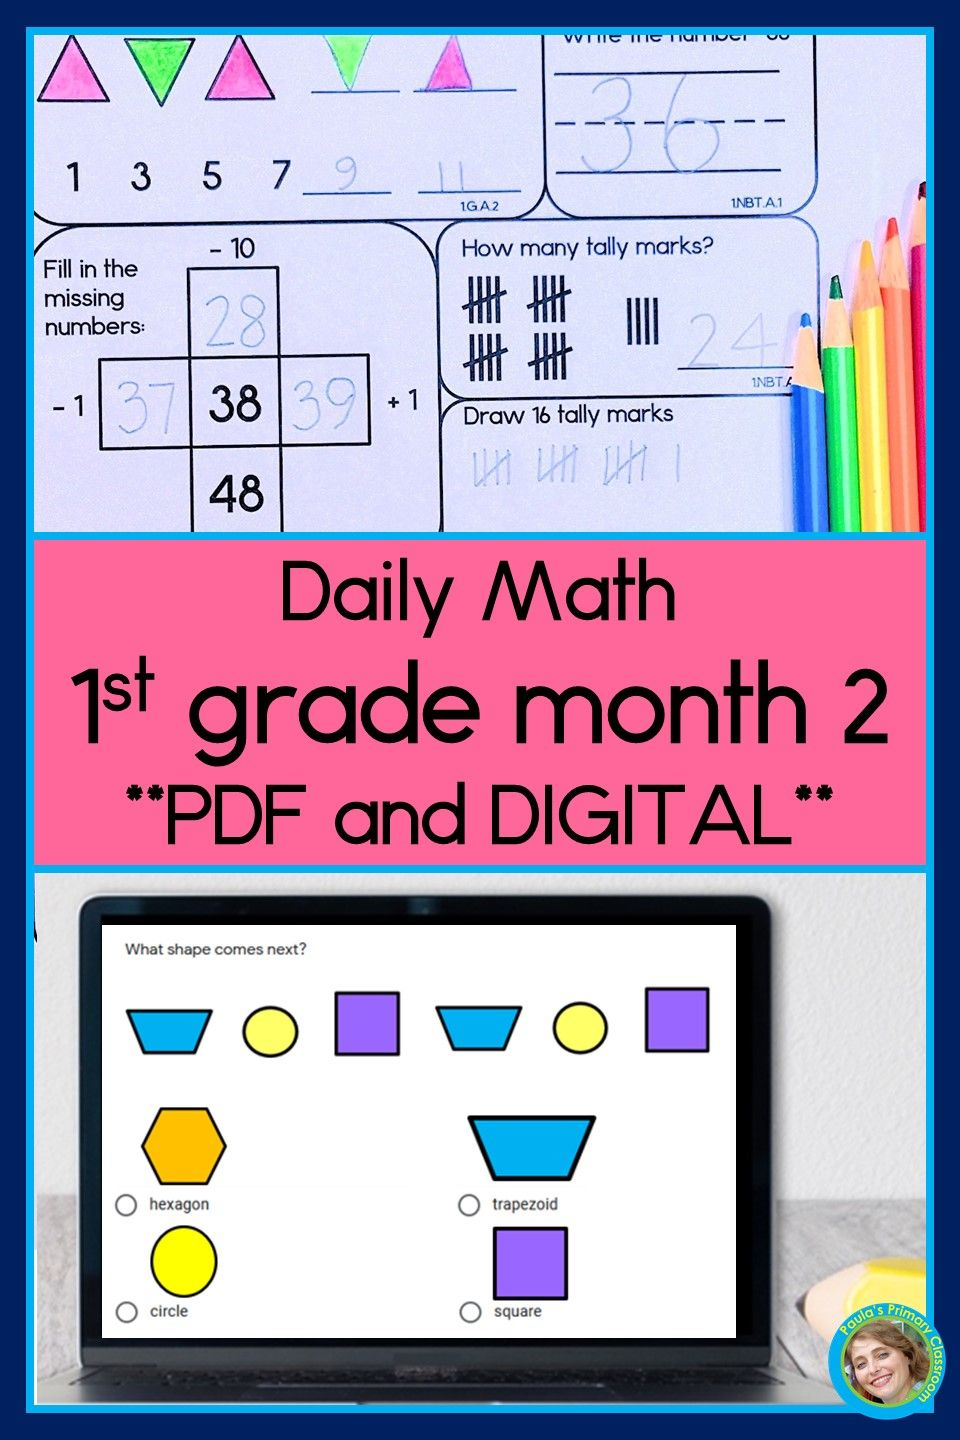 Daily Math For First Grade Month 2 Printable And Google Slides Versions Spiraling Curriculum Daily Math Daily Math Activities Math [ 1440 x 960 Pixel ]